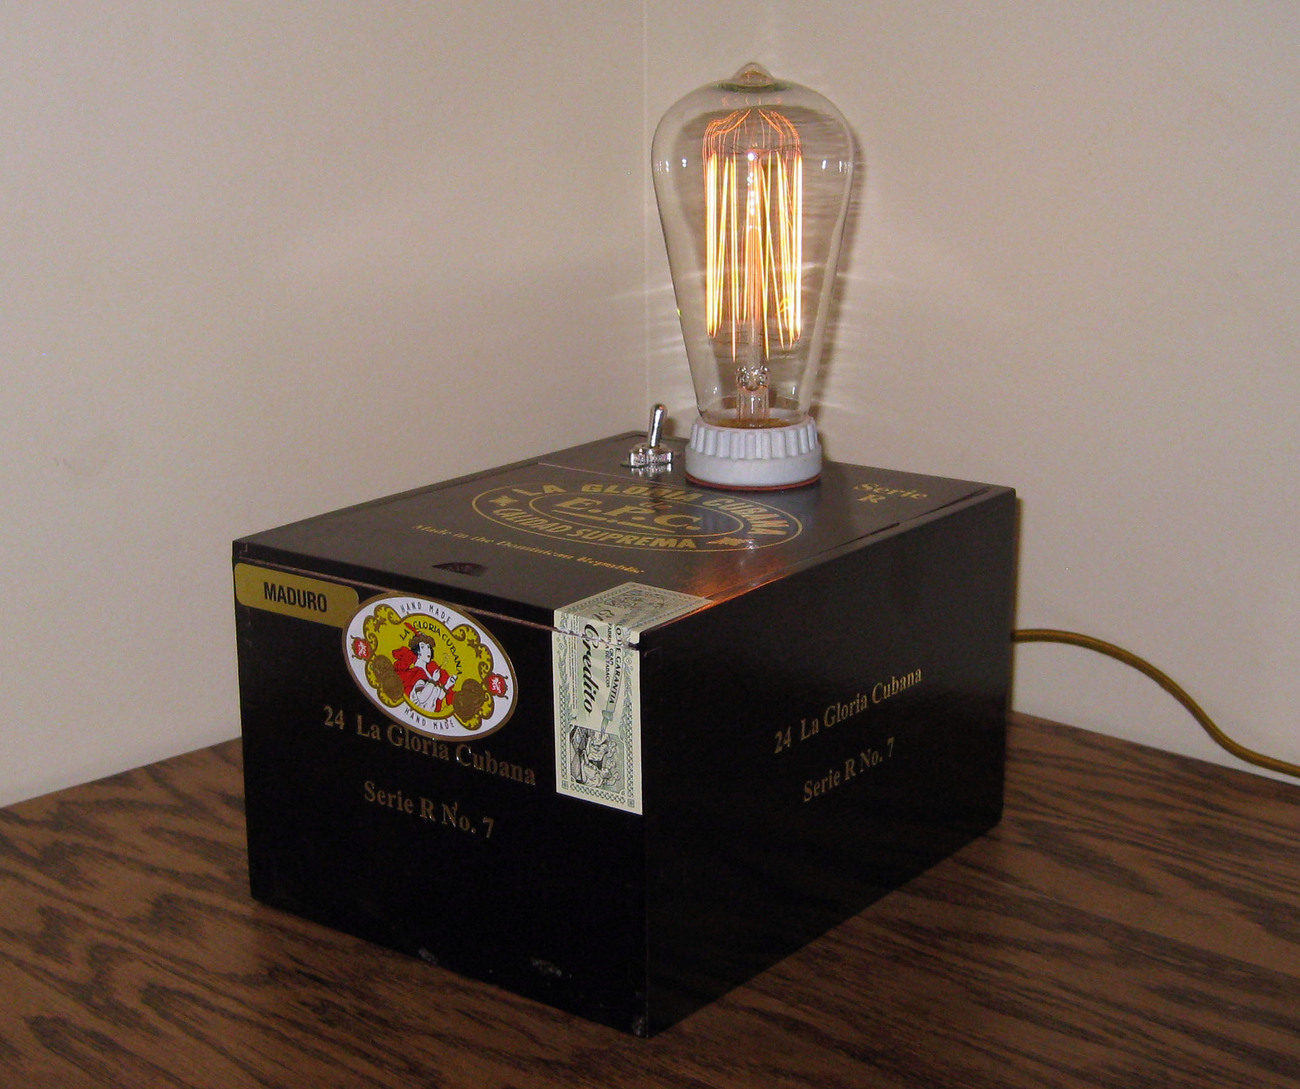 Cigar Box Desk Lamp: La Gloria Cubana